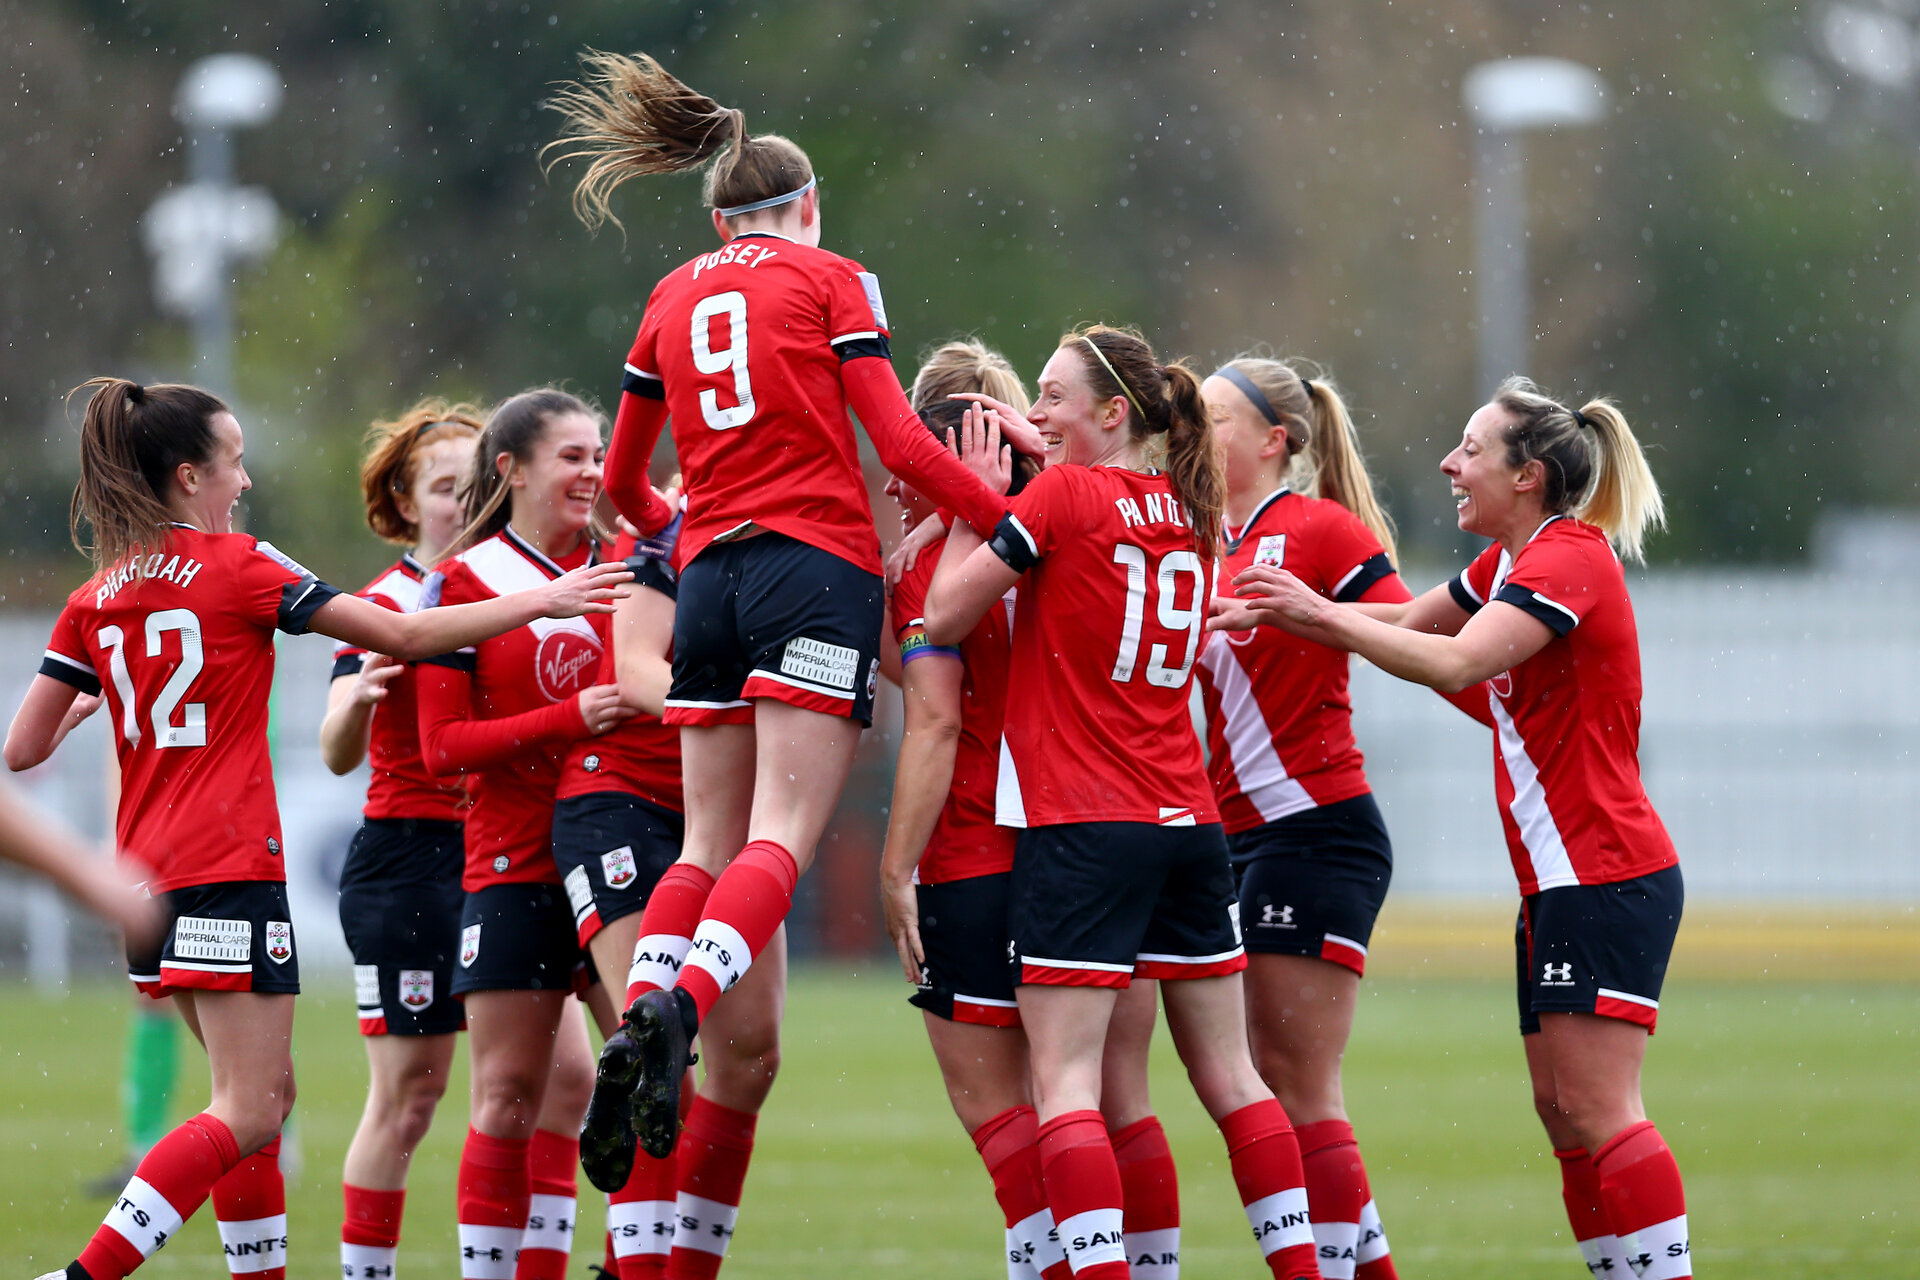 SOUTHAMPTON, ENGLAND - APRIL 11: Southampton players celebrate with Shannon Siewright as she opens the scoring during the Vitality Women's FA Cup third round match between Southampton Women and Yeovil United Women at The Snows Stadium on April 11, 2021 in Southampton, England. (Photo by Isabelle Field/Southampton FC via Getty Images)